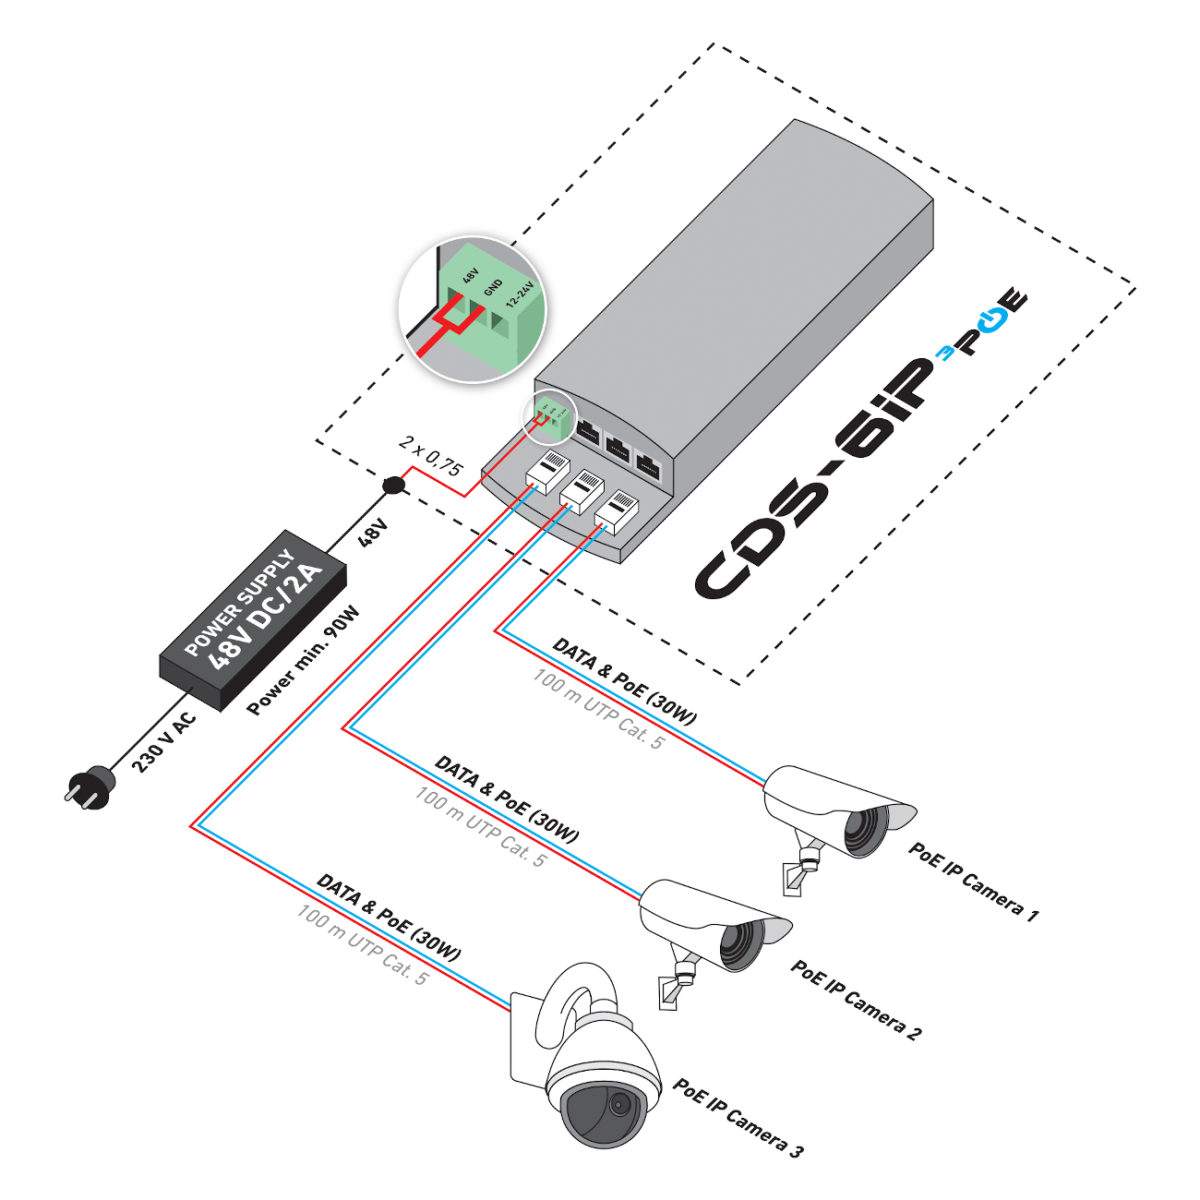 How to connect a camera to WiFI CAMSAT